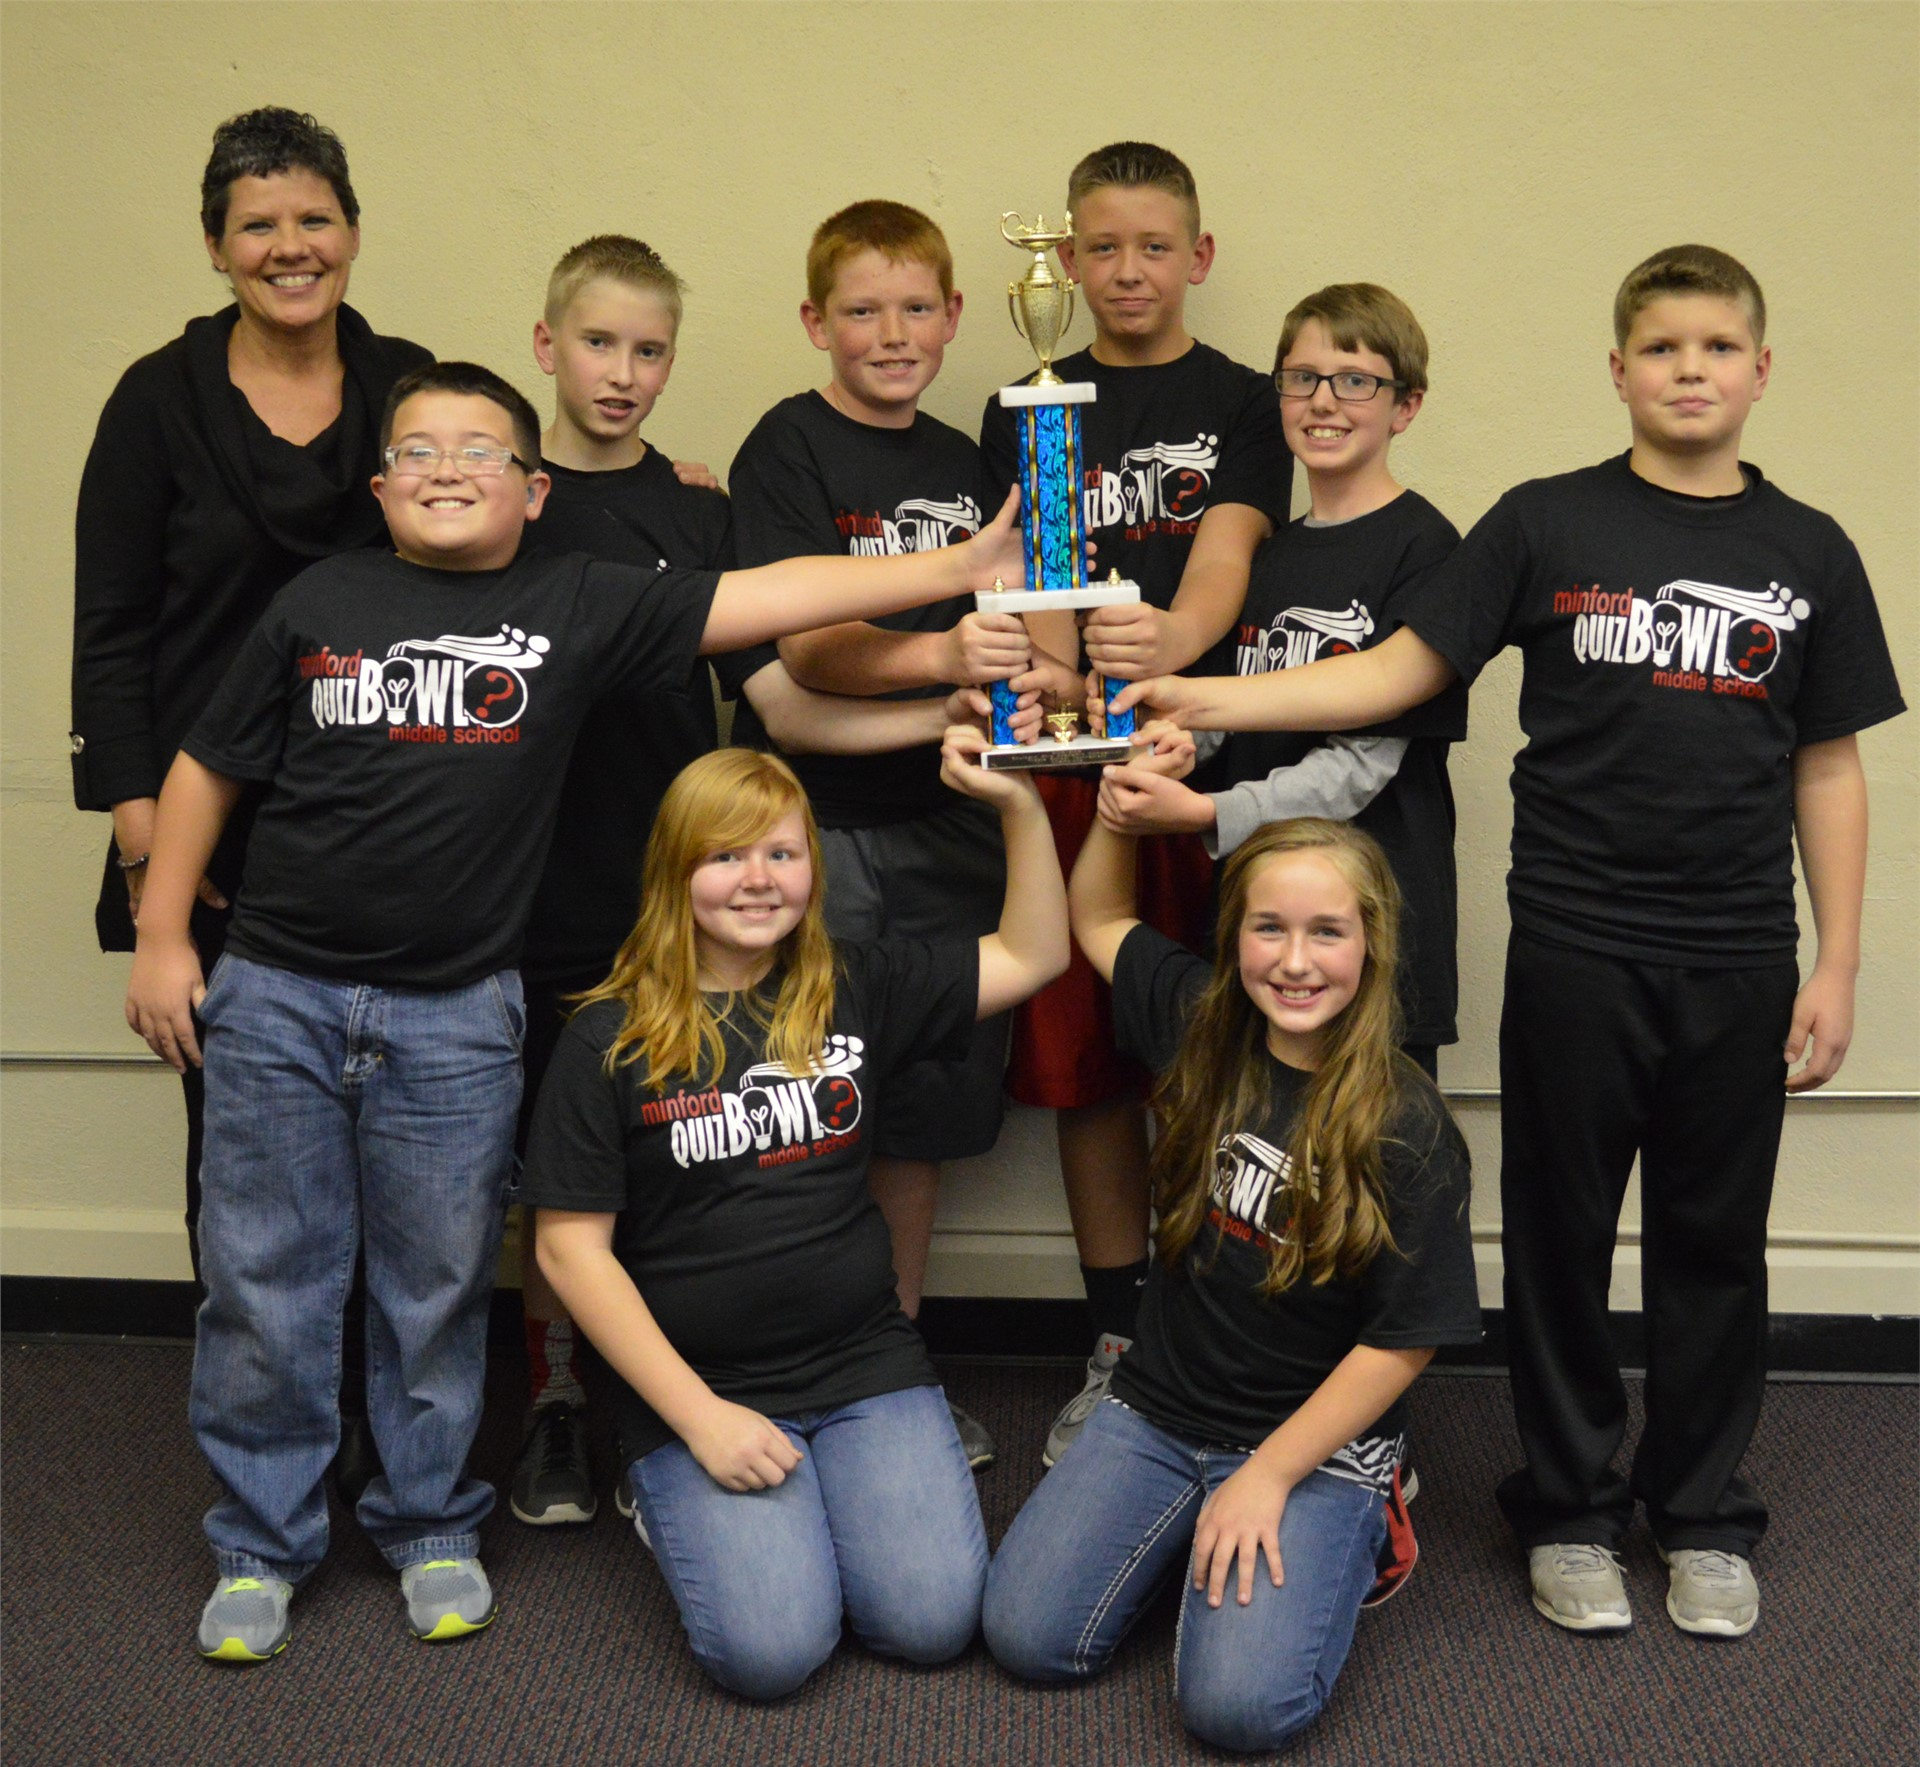 Minford Middle School, 2015 Quiz Bowl Champions